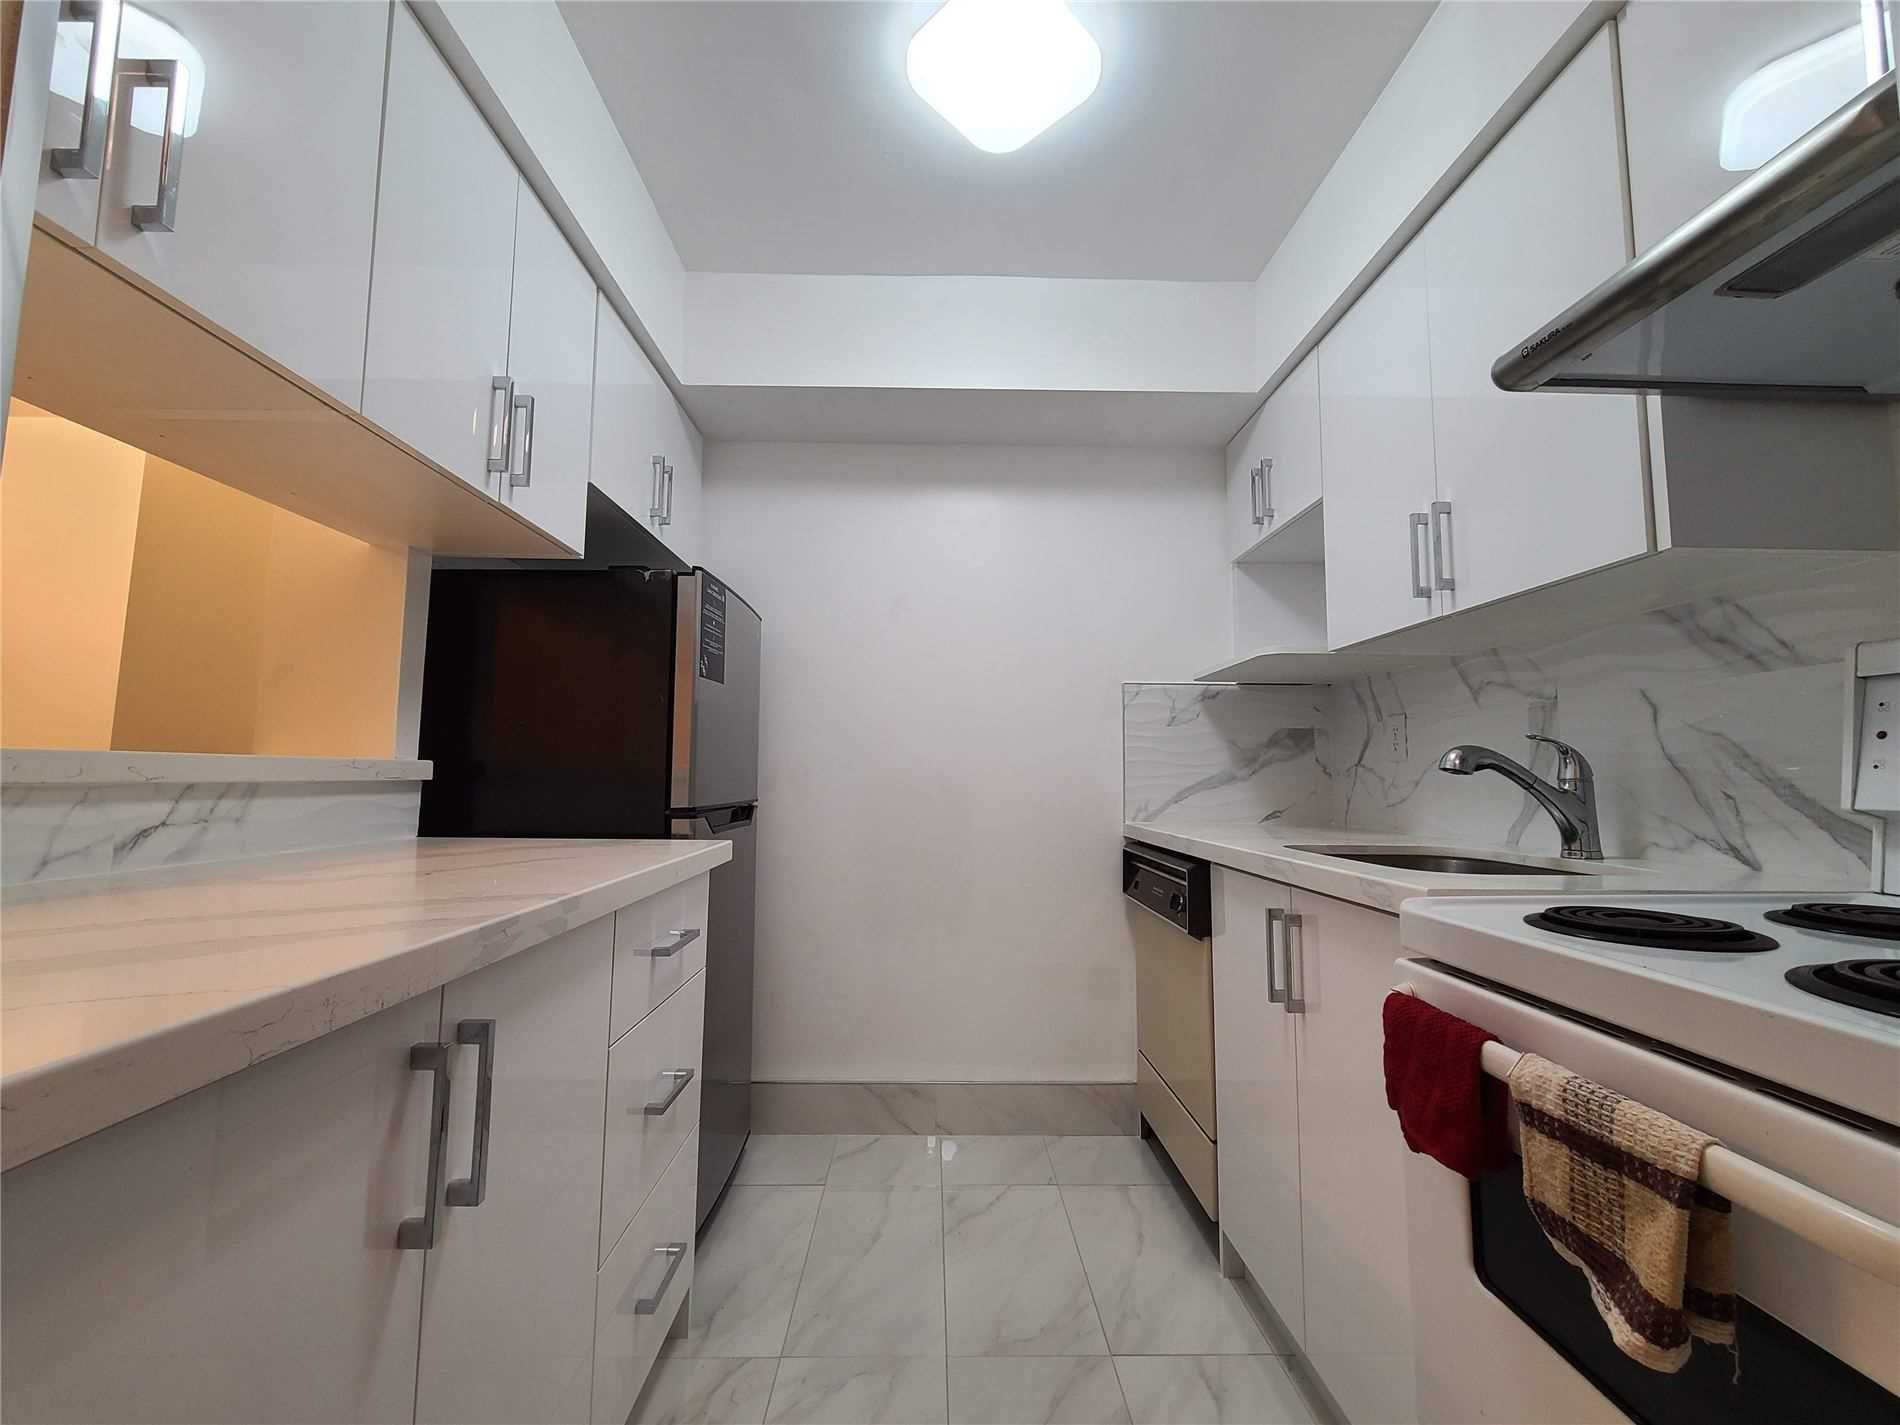 633 Bay St, unit 1202 for rent in Toronto - image #2